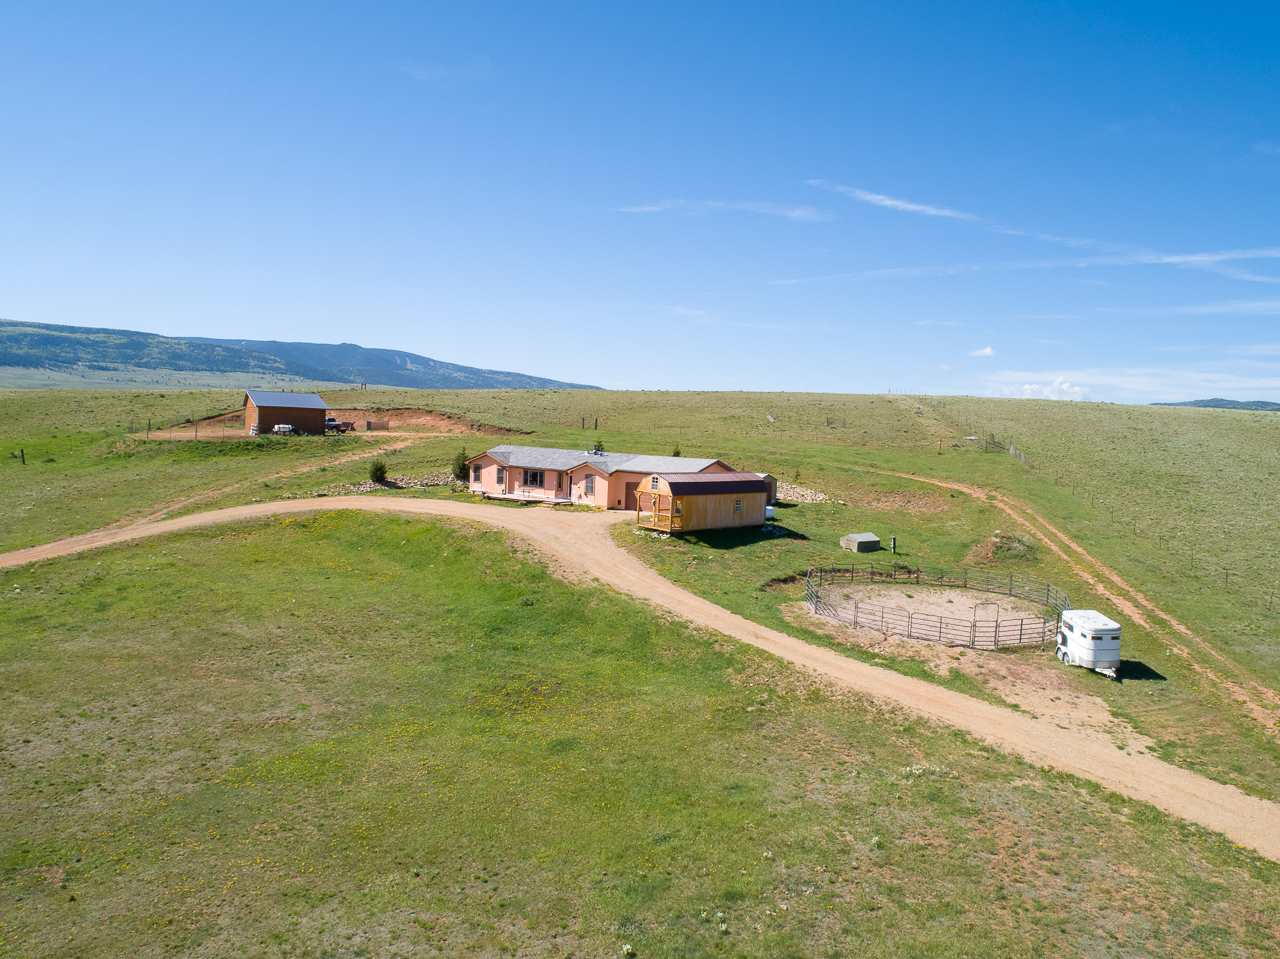 41 Snowflake Rd, Eagle Nest, NM 87718